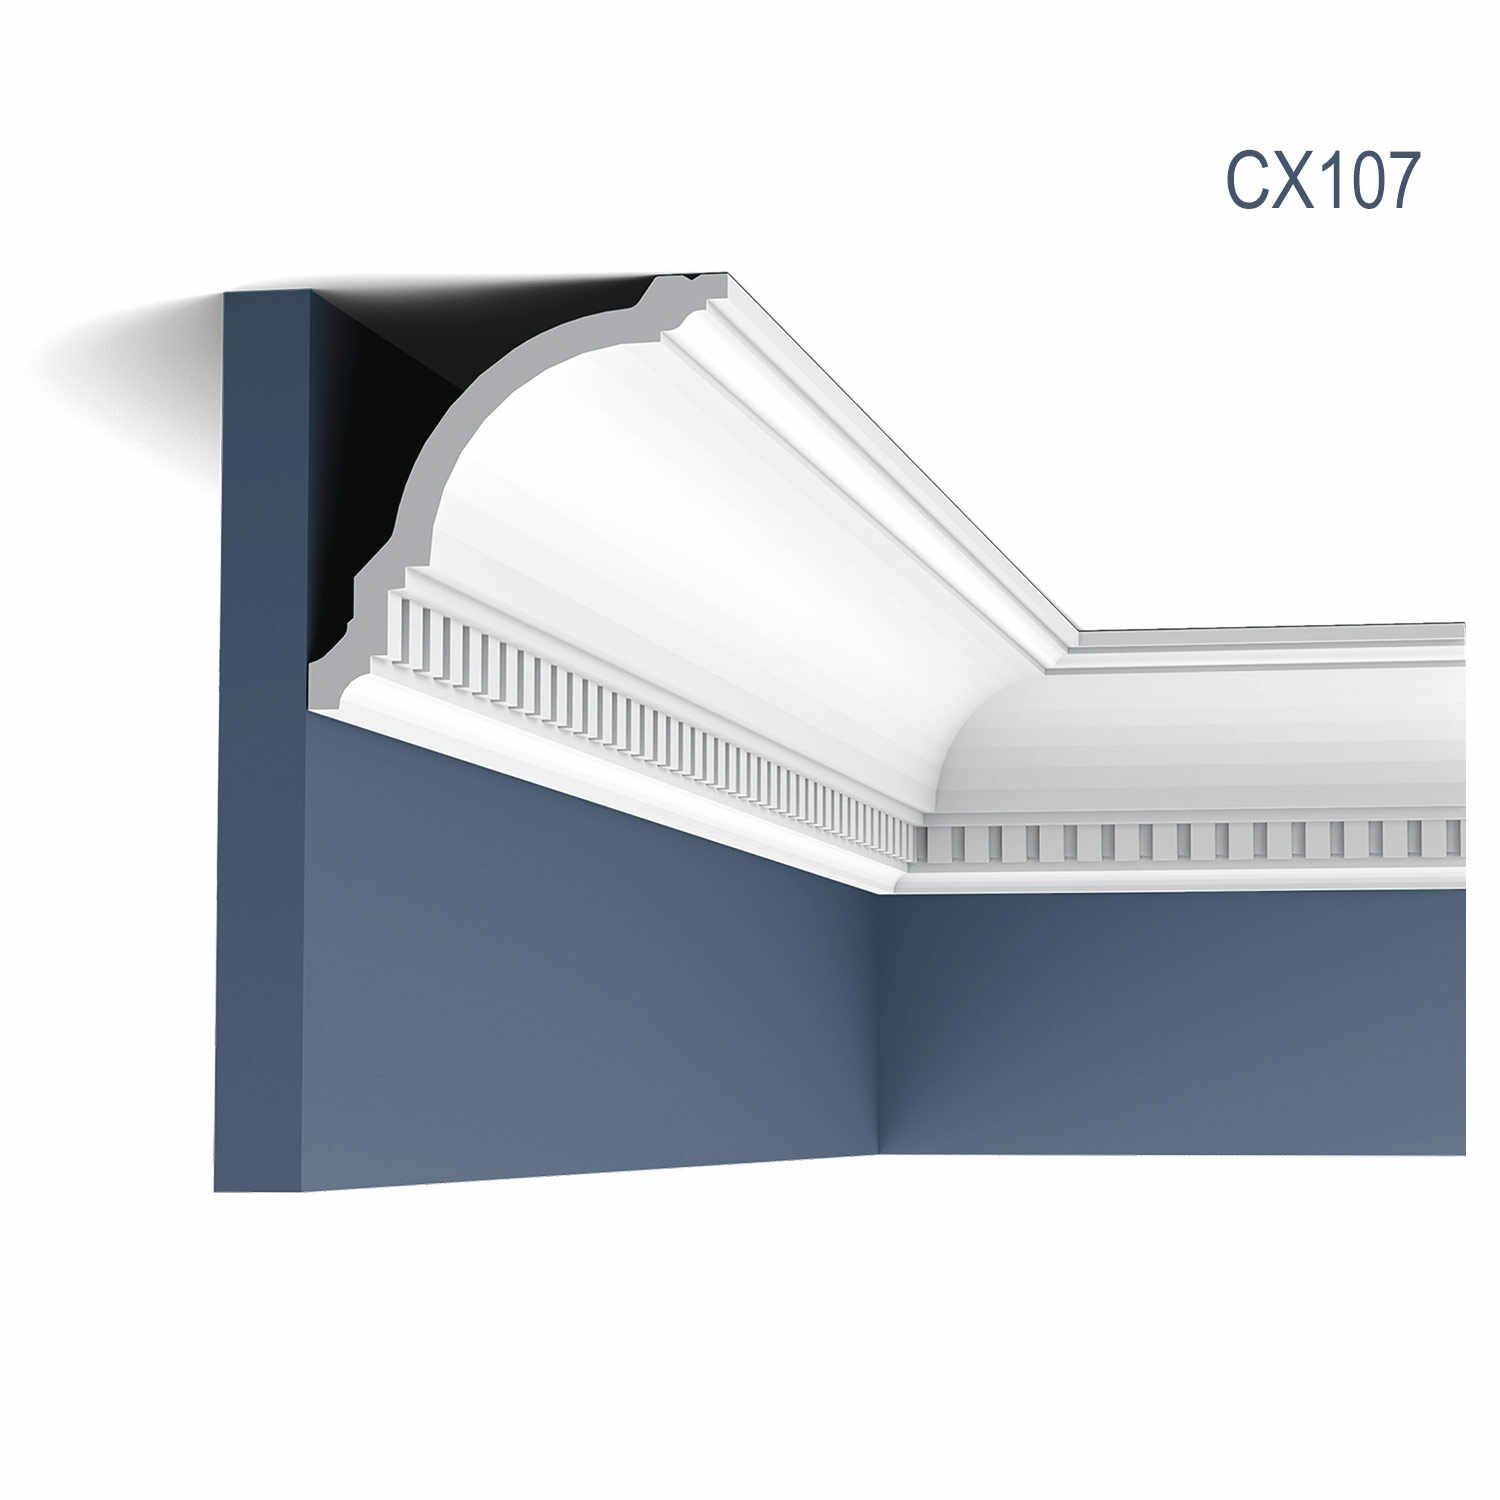 Cornisa Axxent CX107, Dimensiuni: 200 X 11.8 X 11.7 cm, Orac Decor